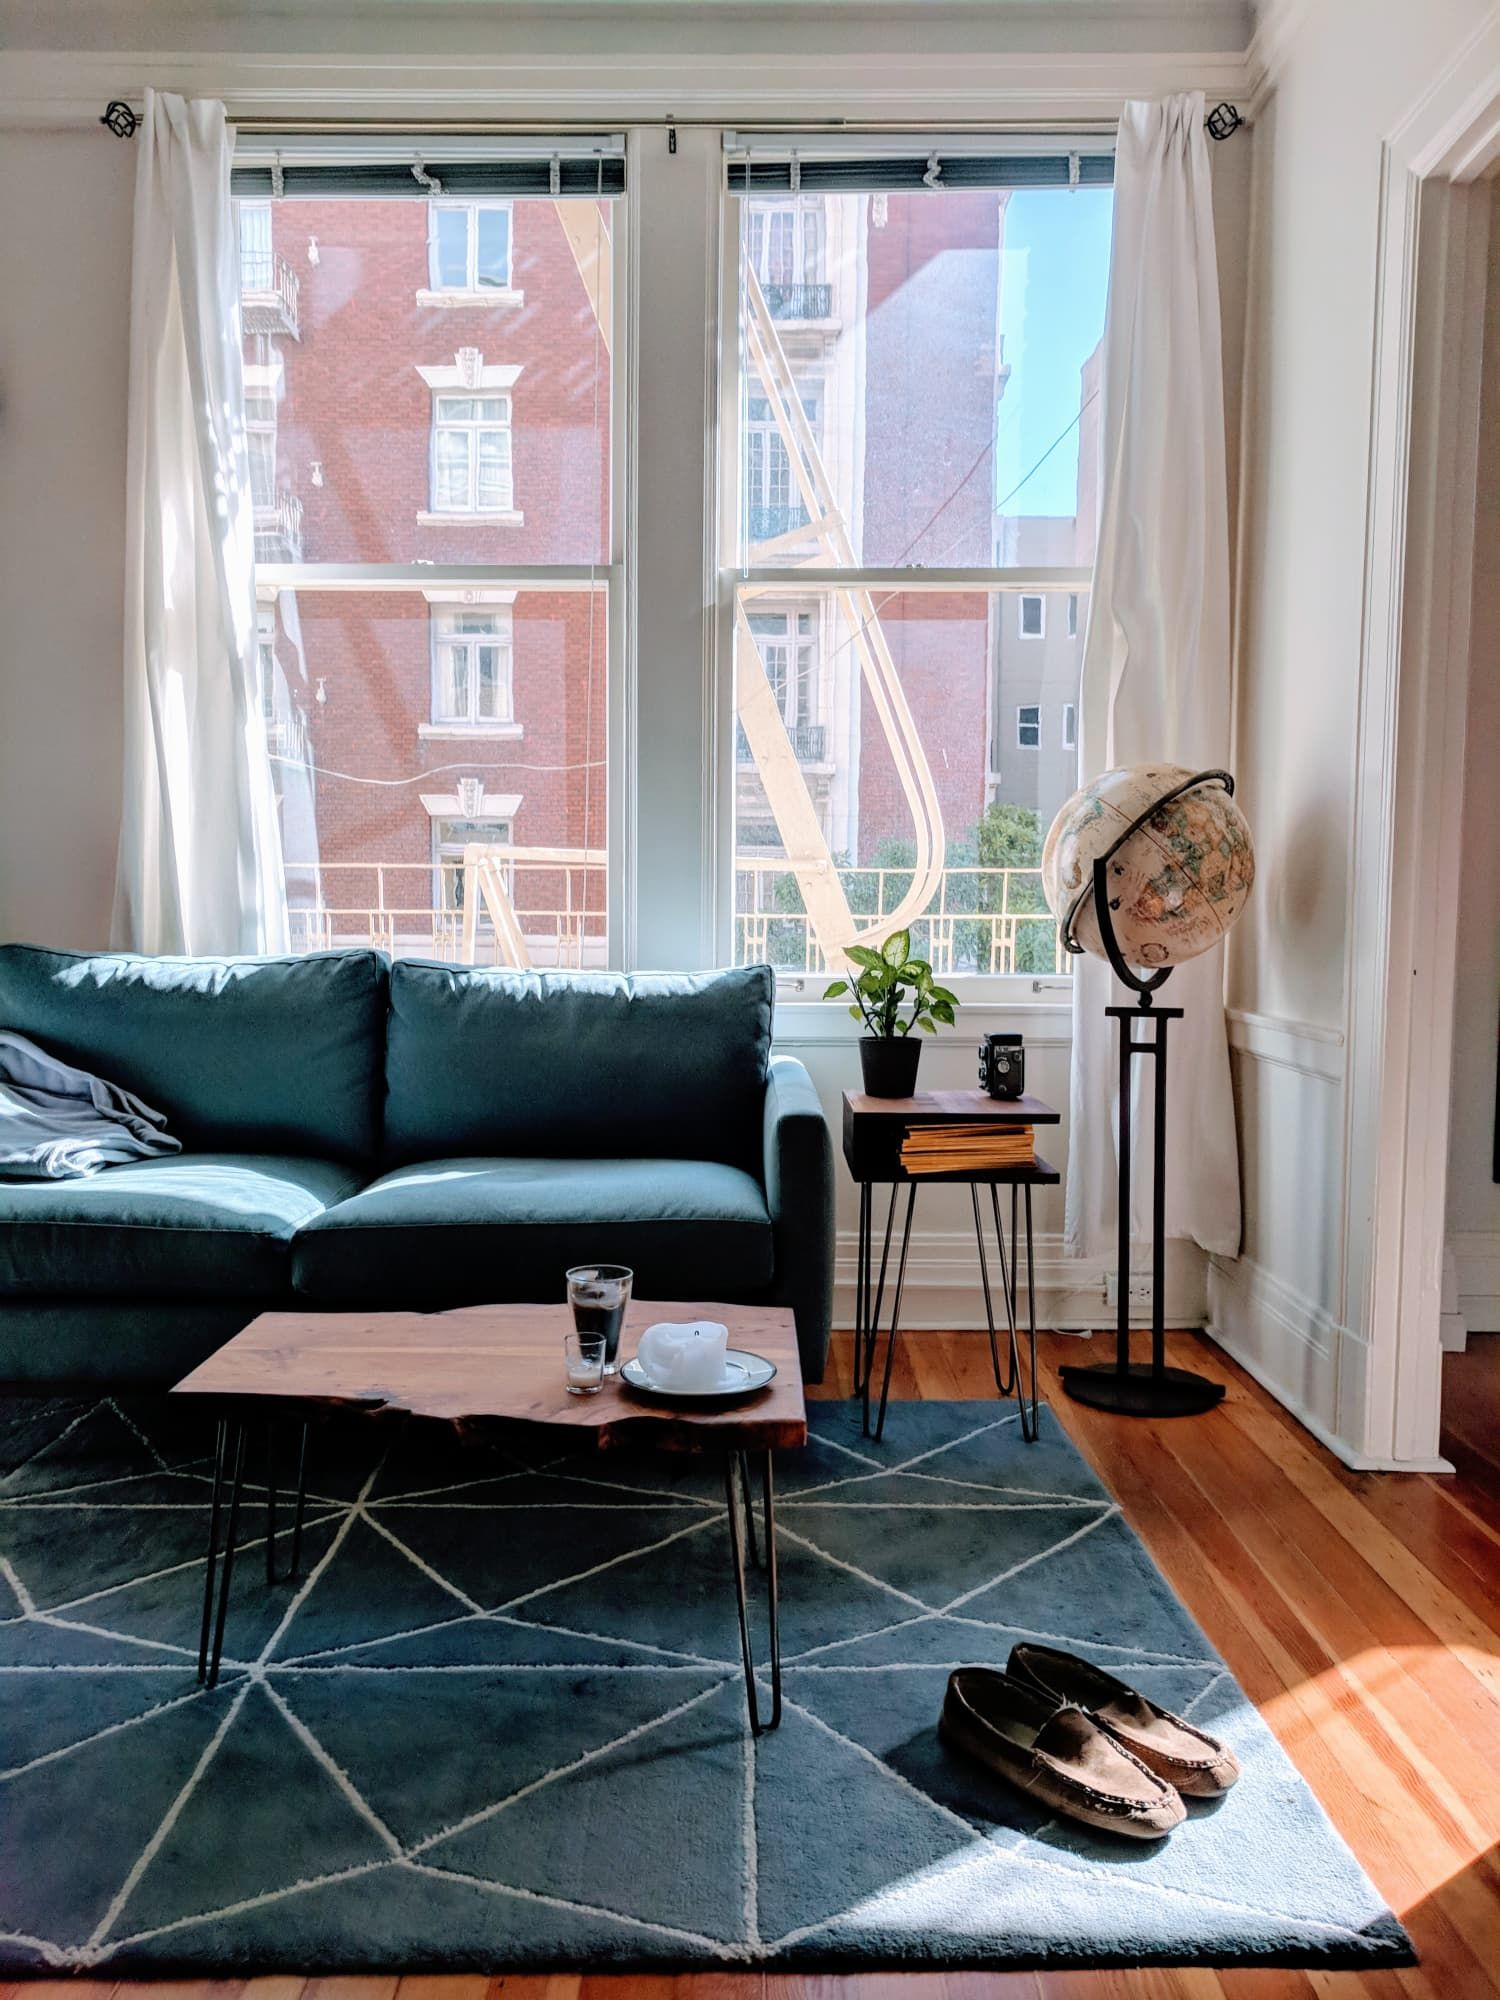 Small Living Room Apartment Therapy: A Traveler's 400-Square-Foot San Francisco Studio